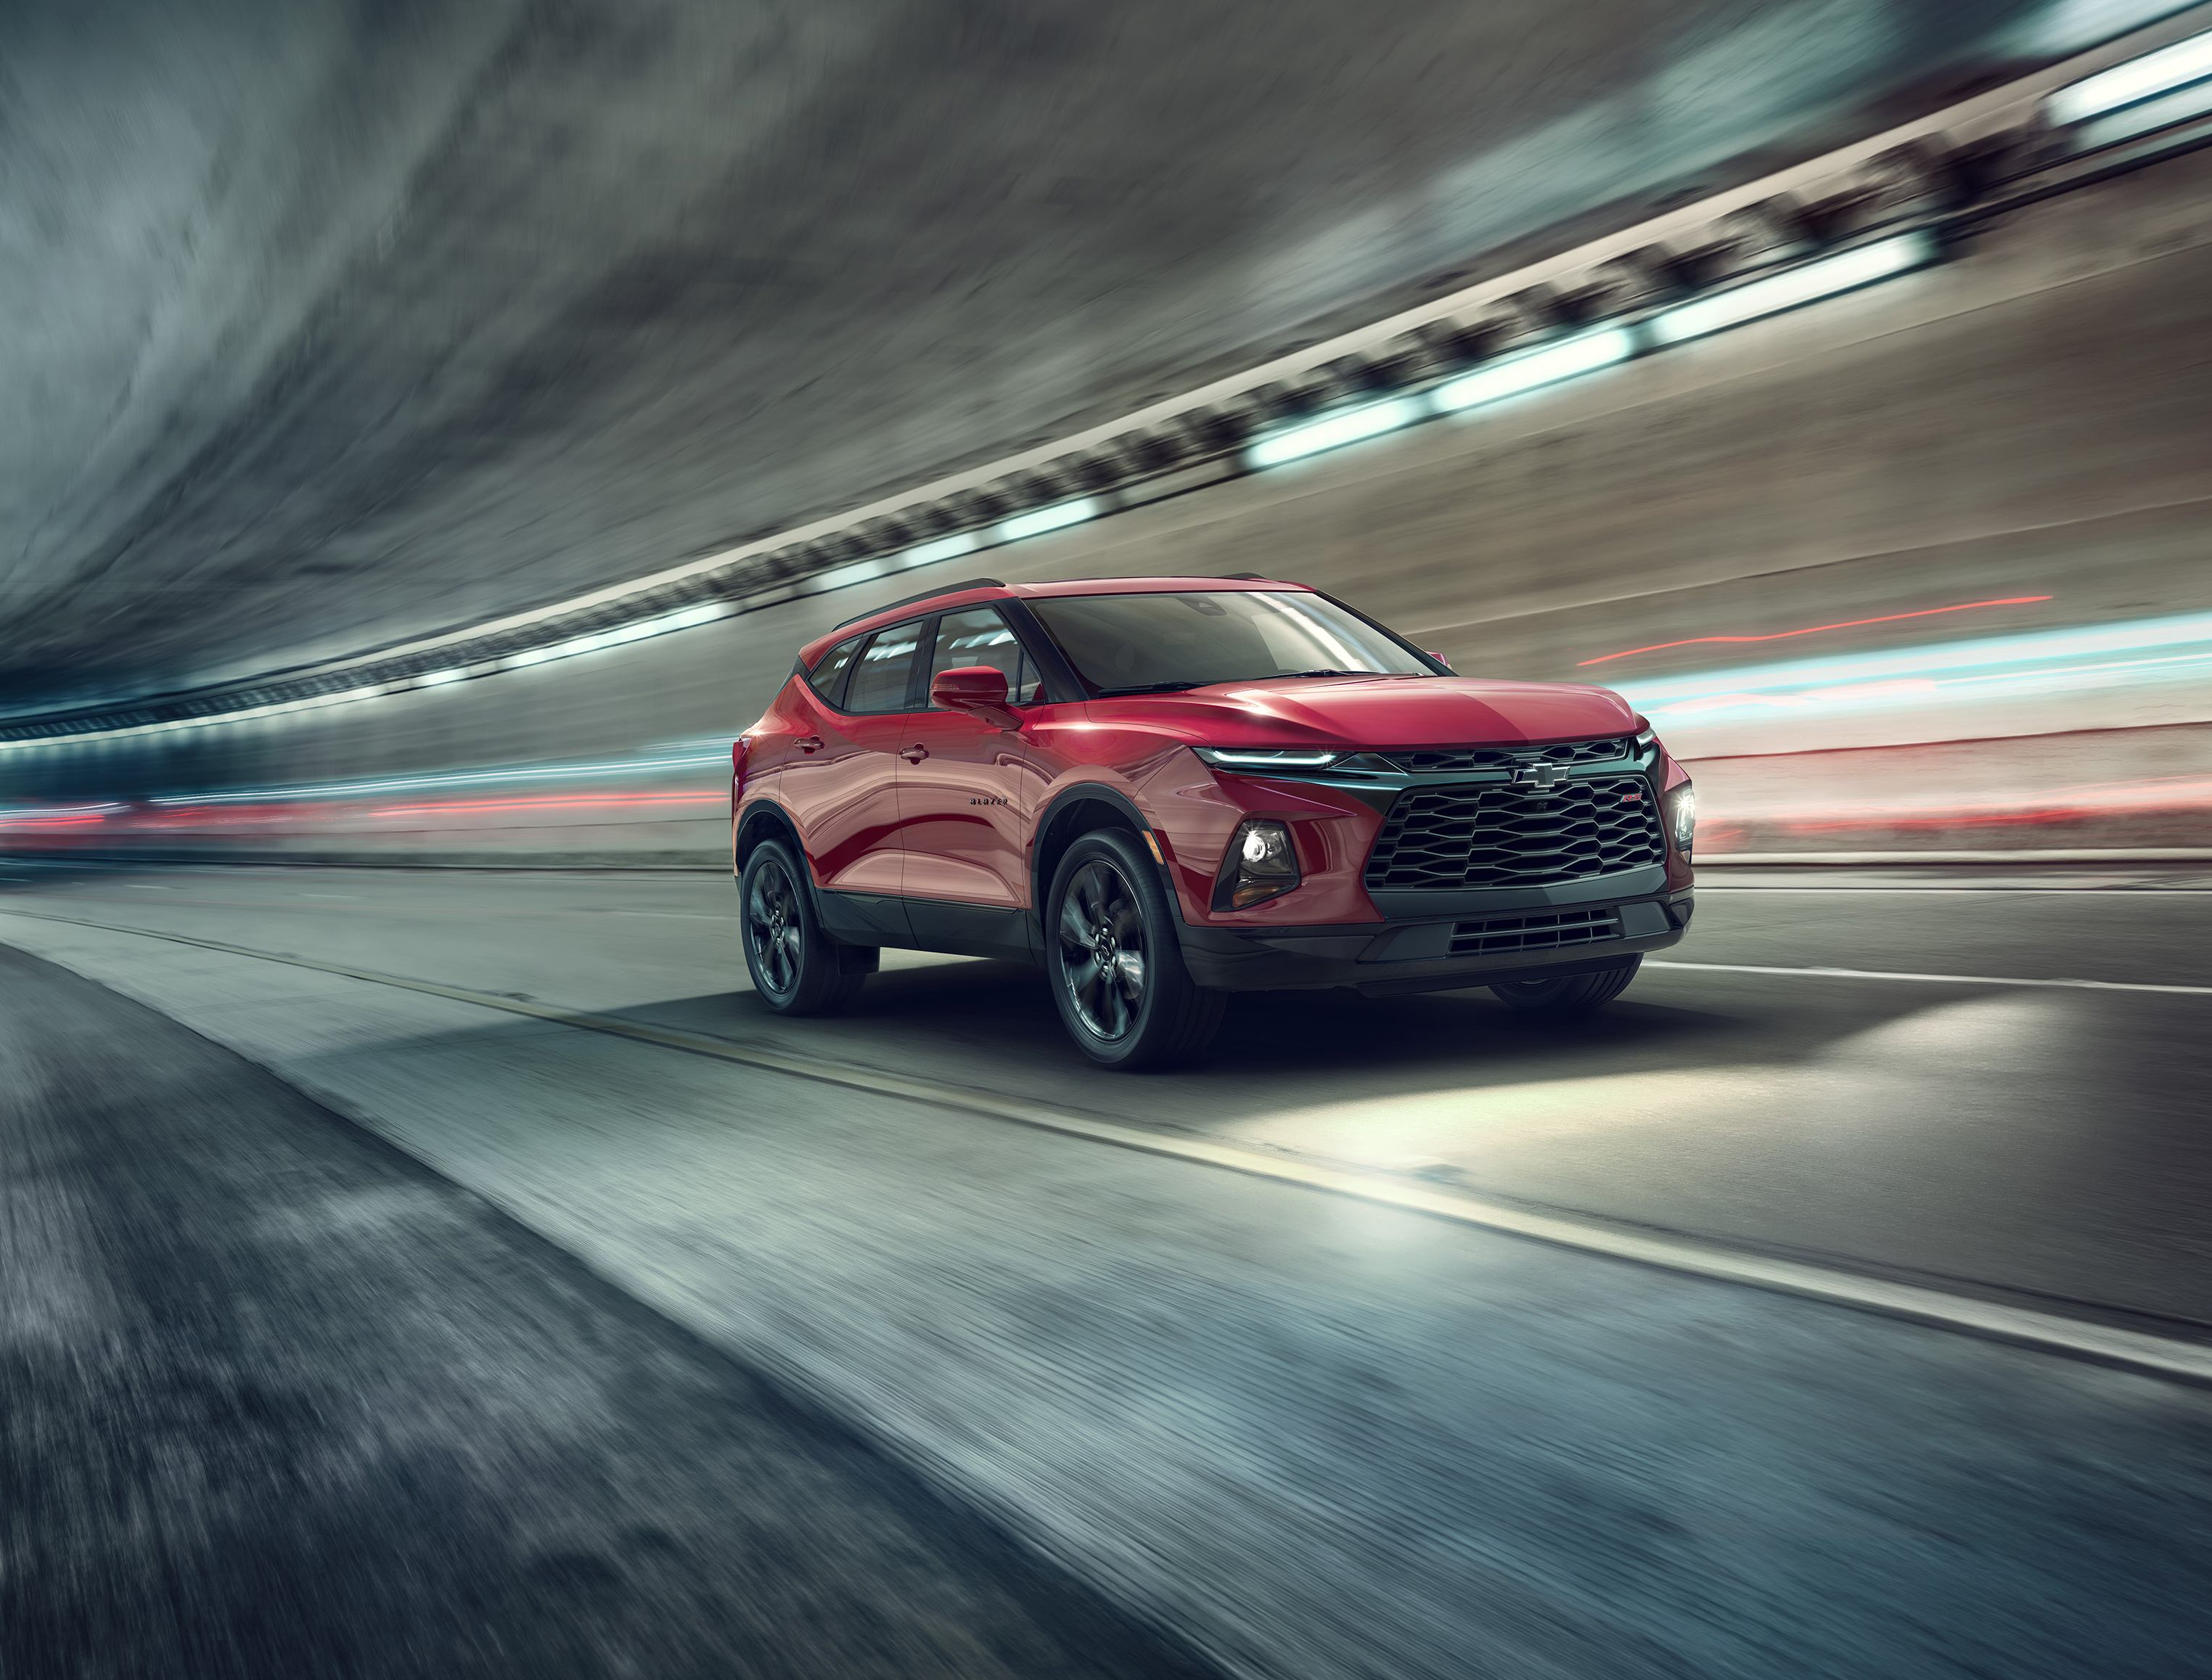 2019 Chevy Blazer - All You Wanted to Know! - Wallace Chevrolet